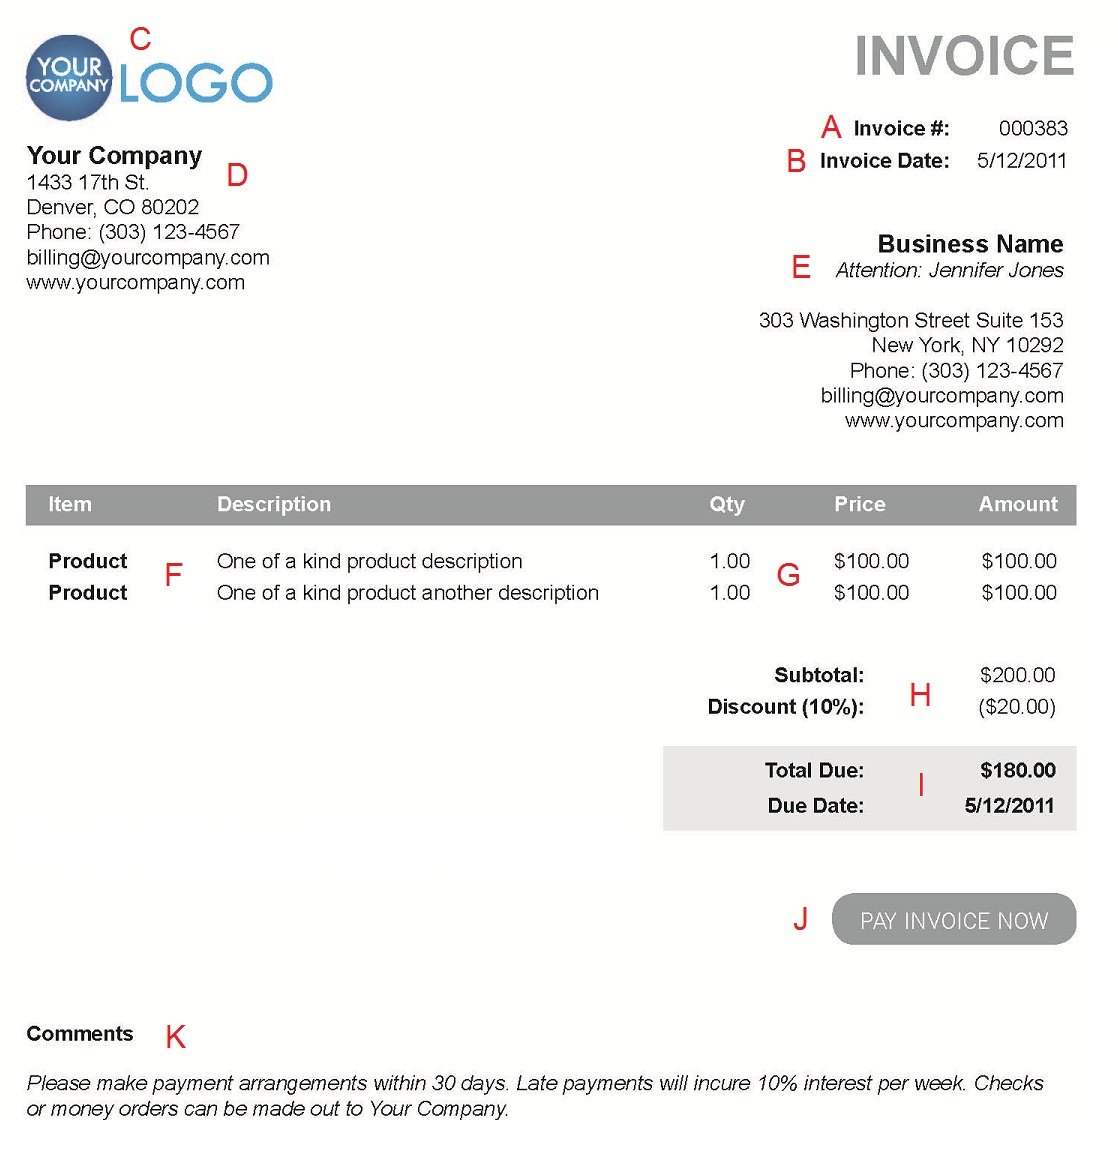 Garygrubbsus  Prepossessing The  Different Sections Of An Electronic Payment Invoice With Gorgeous A  With Captivating Receipt Program Also On Receipt In Addition I Acknowledge Receipt And Auto Receipt As Well As Macy Return Policy Without Receipt Additionally Residential Leaserental Agreement And Deposit Receipt From Paysimplecom With Garygrubbsus  Gorgeous The  Different Sections Of An Electronic Payment Invoice With Captivating A  And Prepossessing Receipt Program Also On Receipt In Addition I Acknowledge Receipt From Paysimplecom